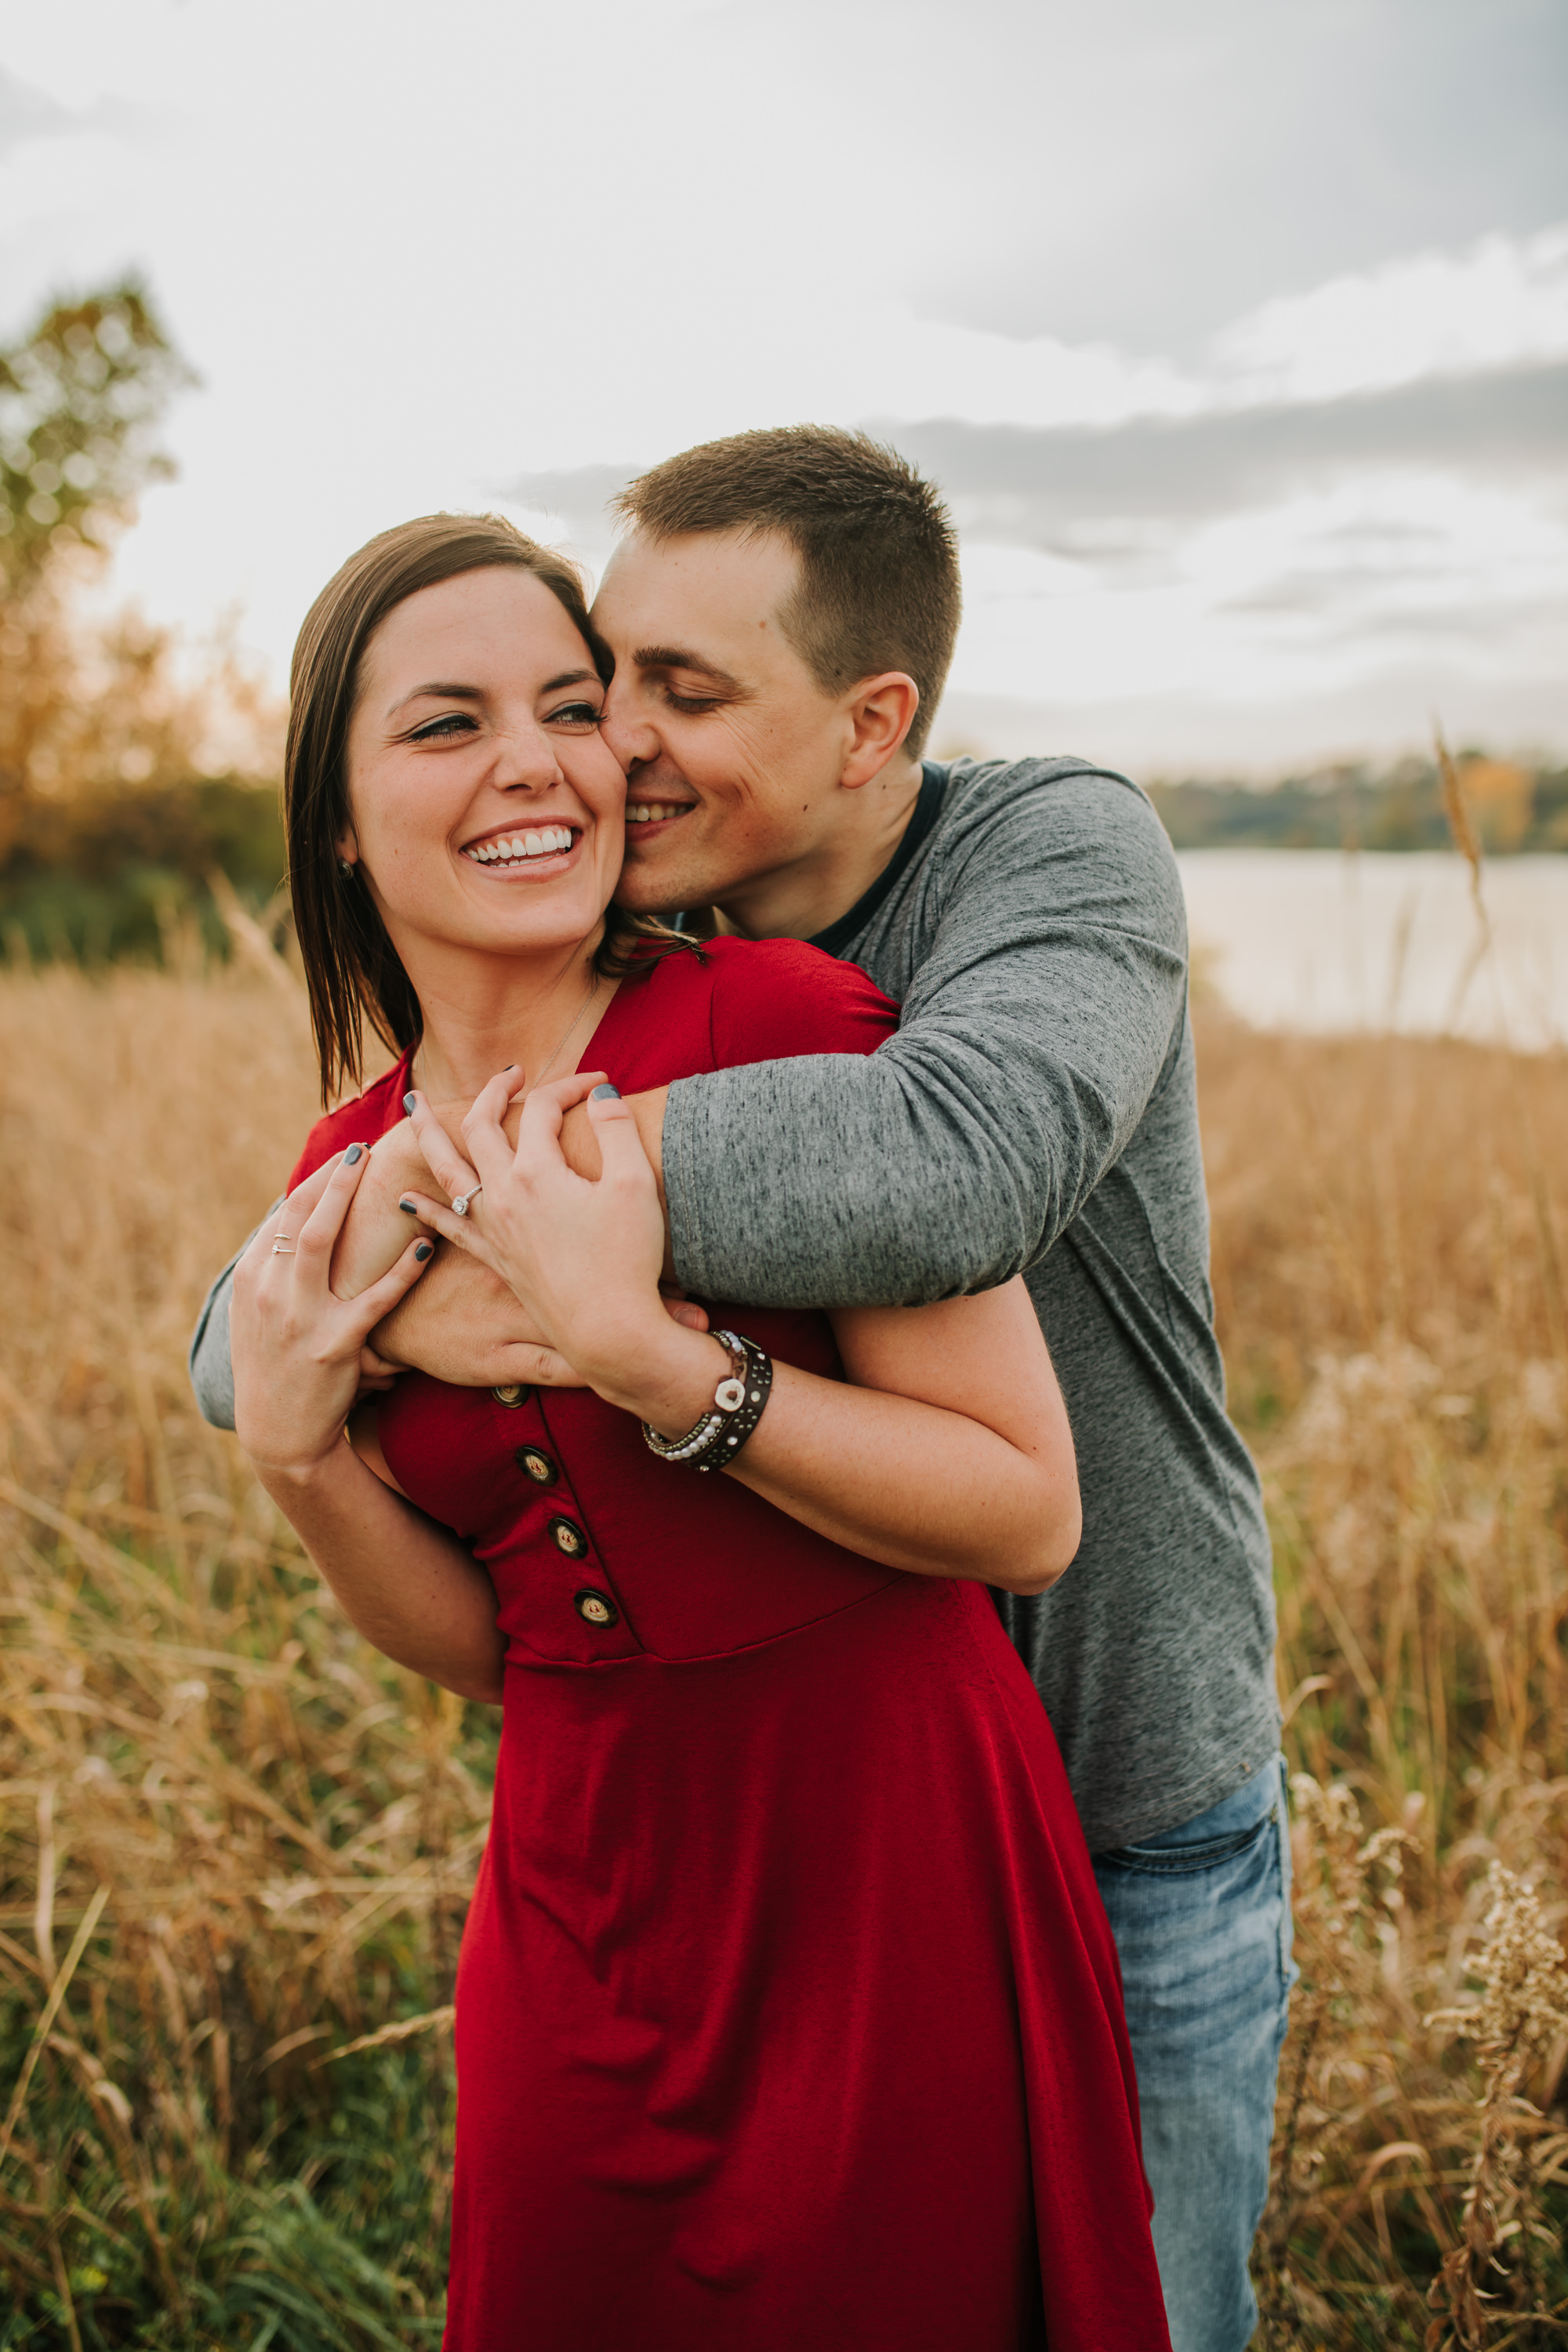 Hannah & Brett - Engaged - Nathaniel Jensen Photography - Omaha Nebraska Wedding Photograper - Omaha Nebraska Engagement Session - Chalco Hills Engagement Session-97.jpg